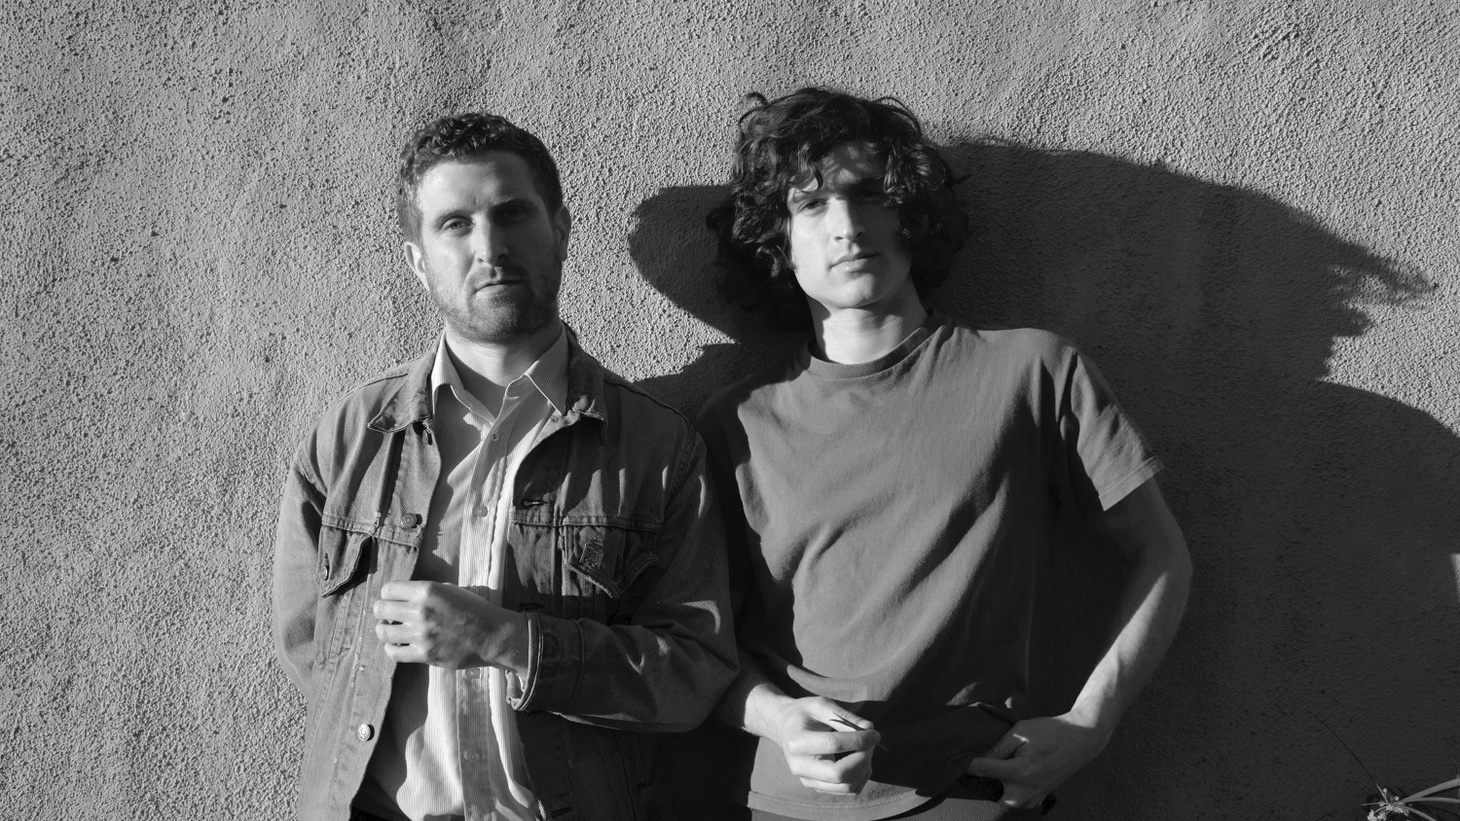 We share the first single from LA band Cones, made up by brothers Jonathan and Michael Rosen who play in Eleanor Friedberger's band.